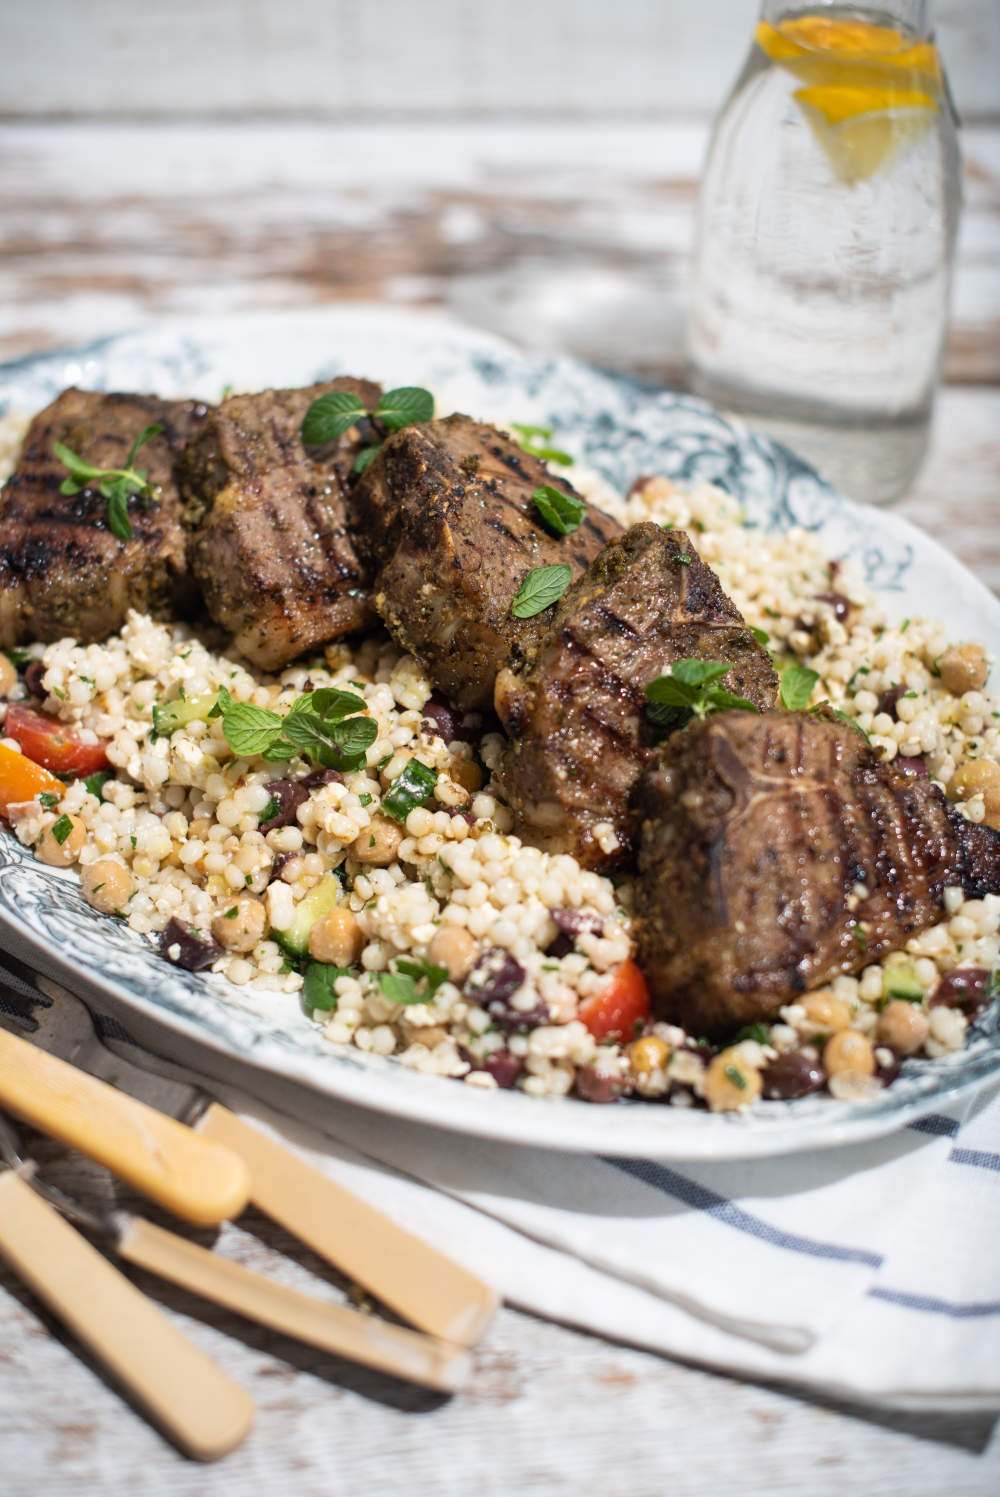 Lamb Chops with Greek Spices and Lemon on Mediterranean Pearl Couscous